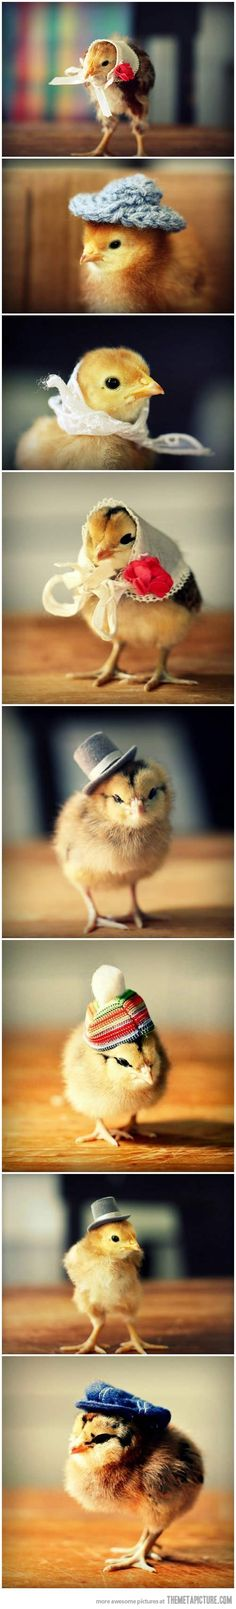 Chicks in hats…  I don't know if I can feed chicks out to my raptors anymore!